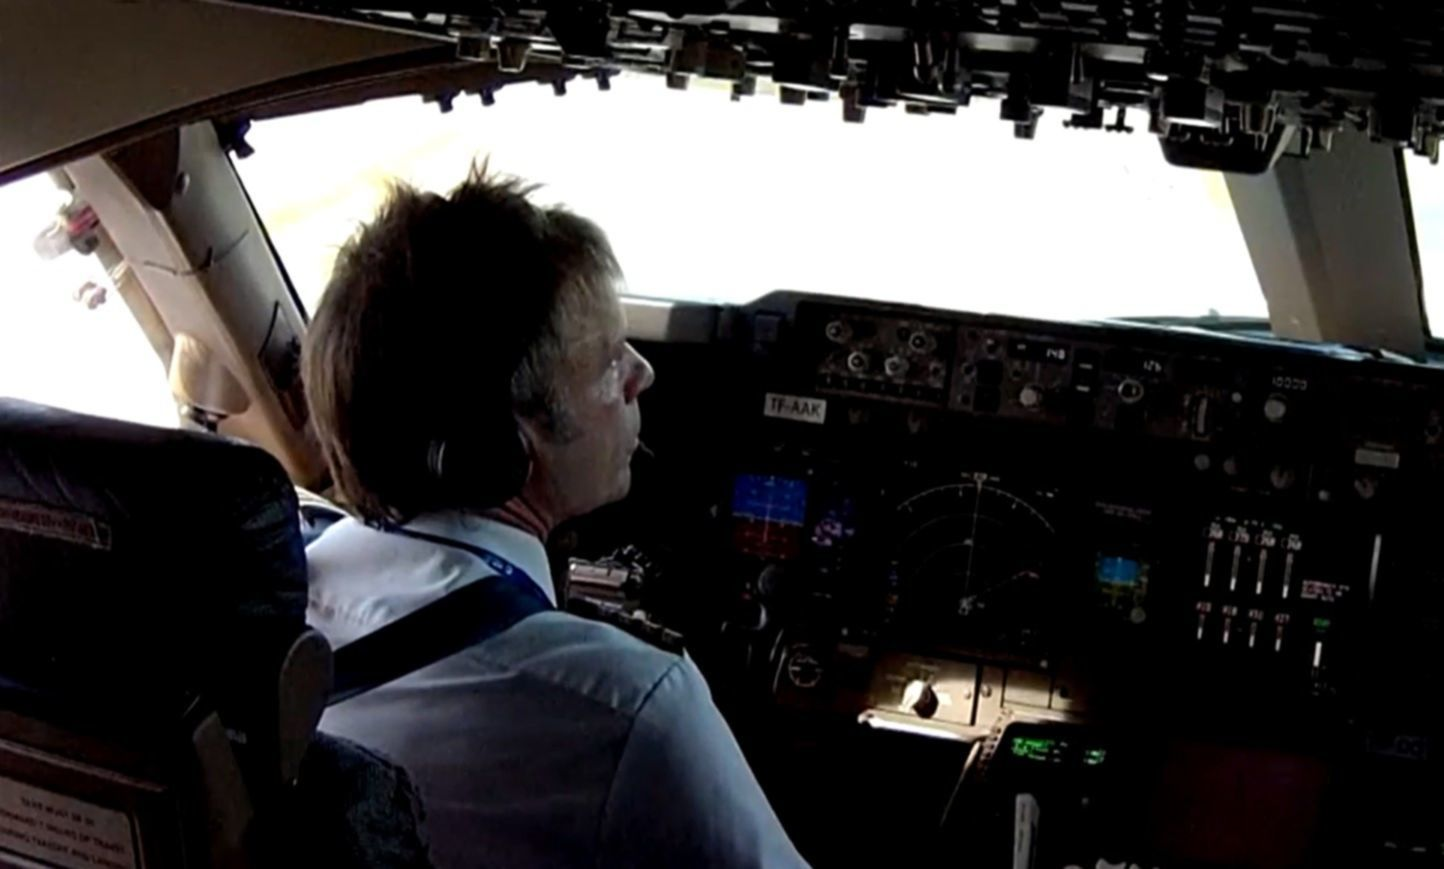 iron maiden bruce dickinson video still cockpit